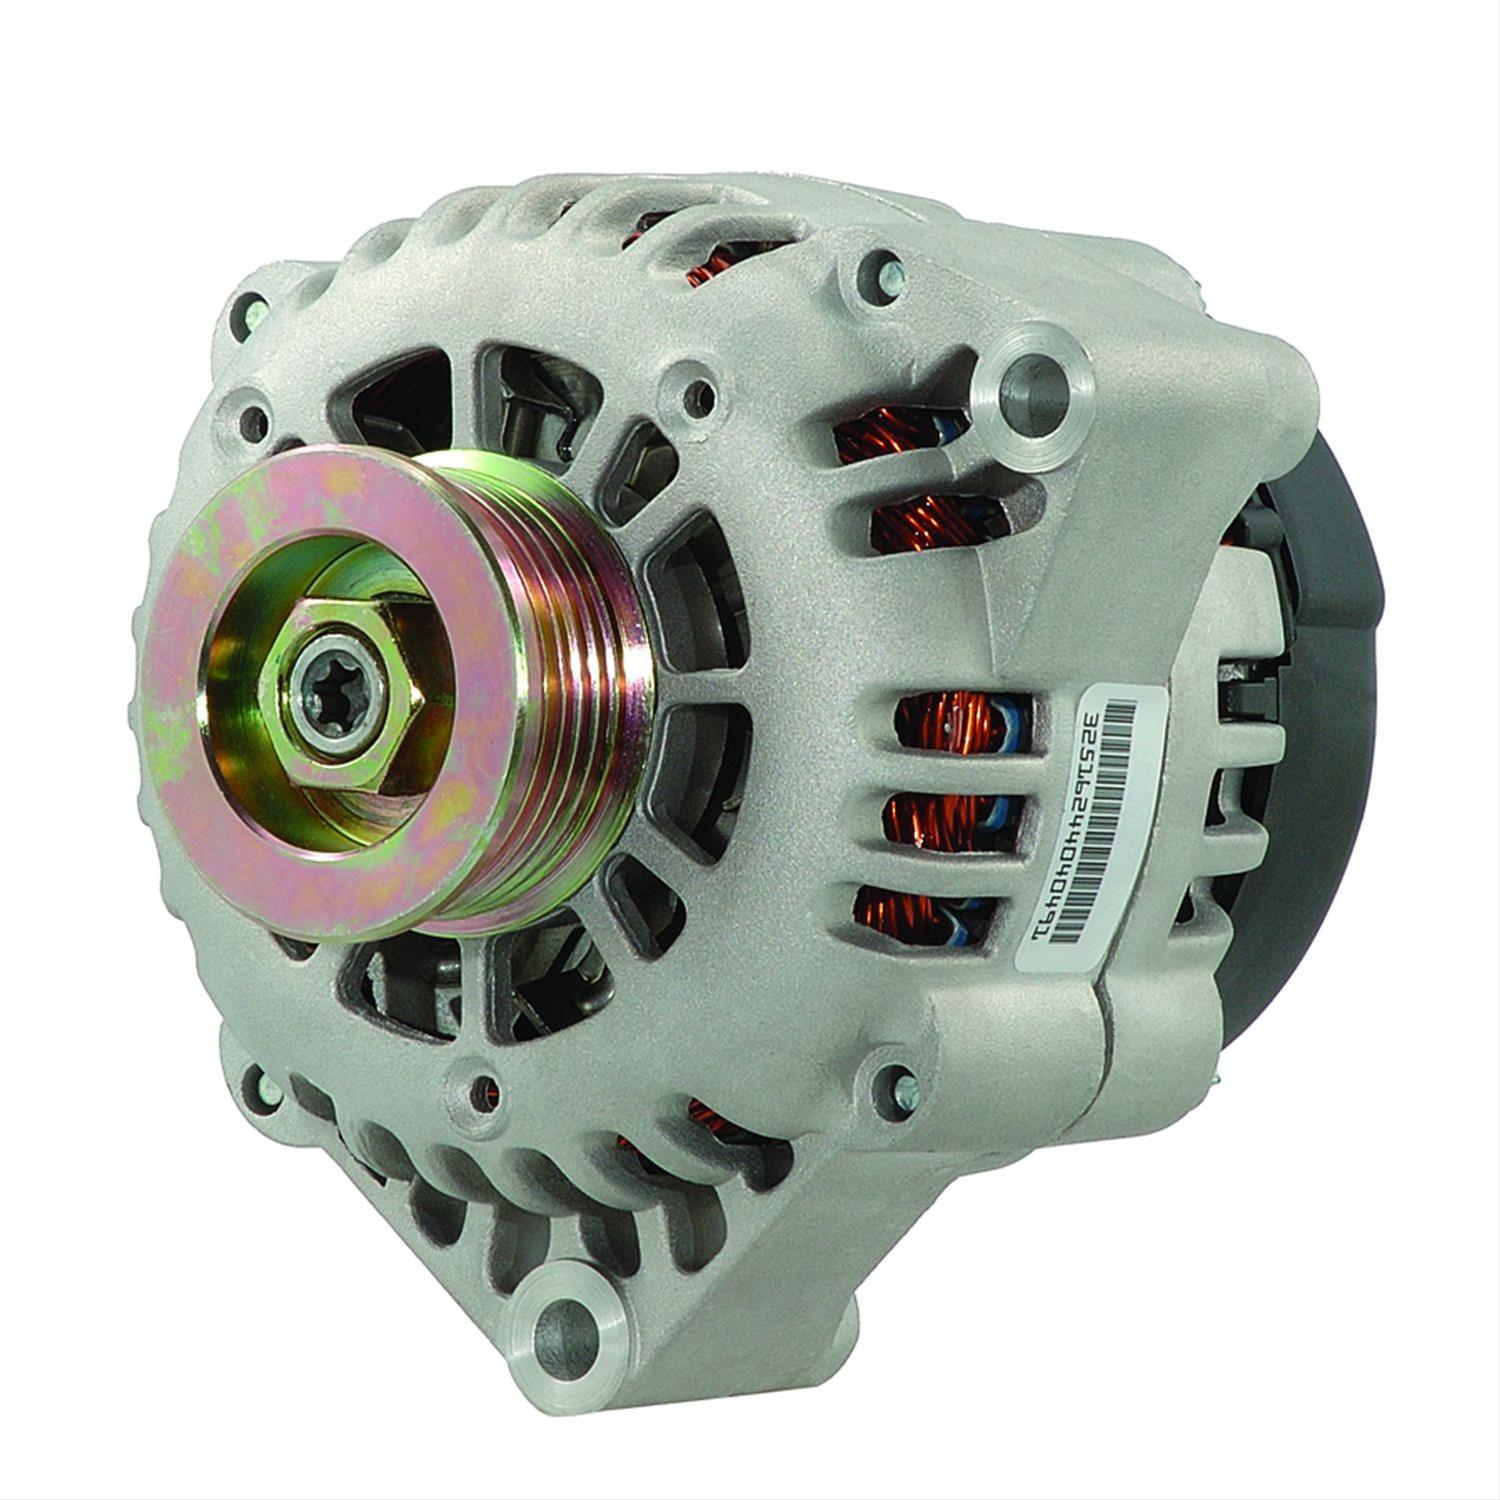 hight resolution of acdelco alternators 88877278 free shipping on orders over 99 at summit racing